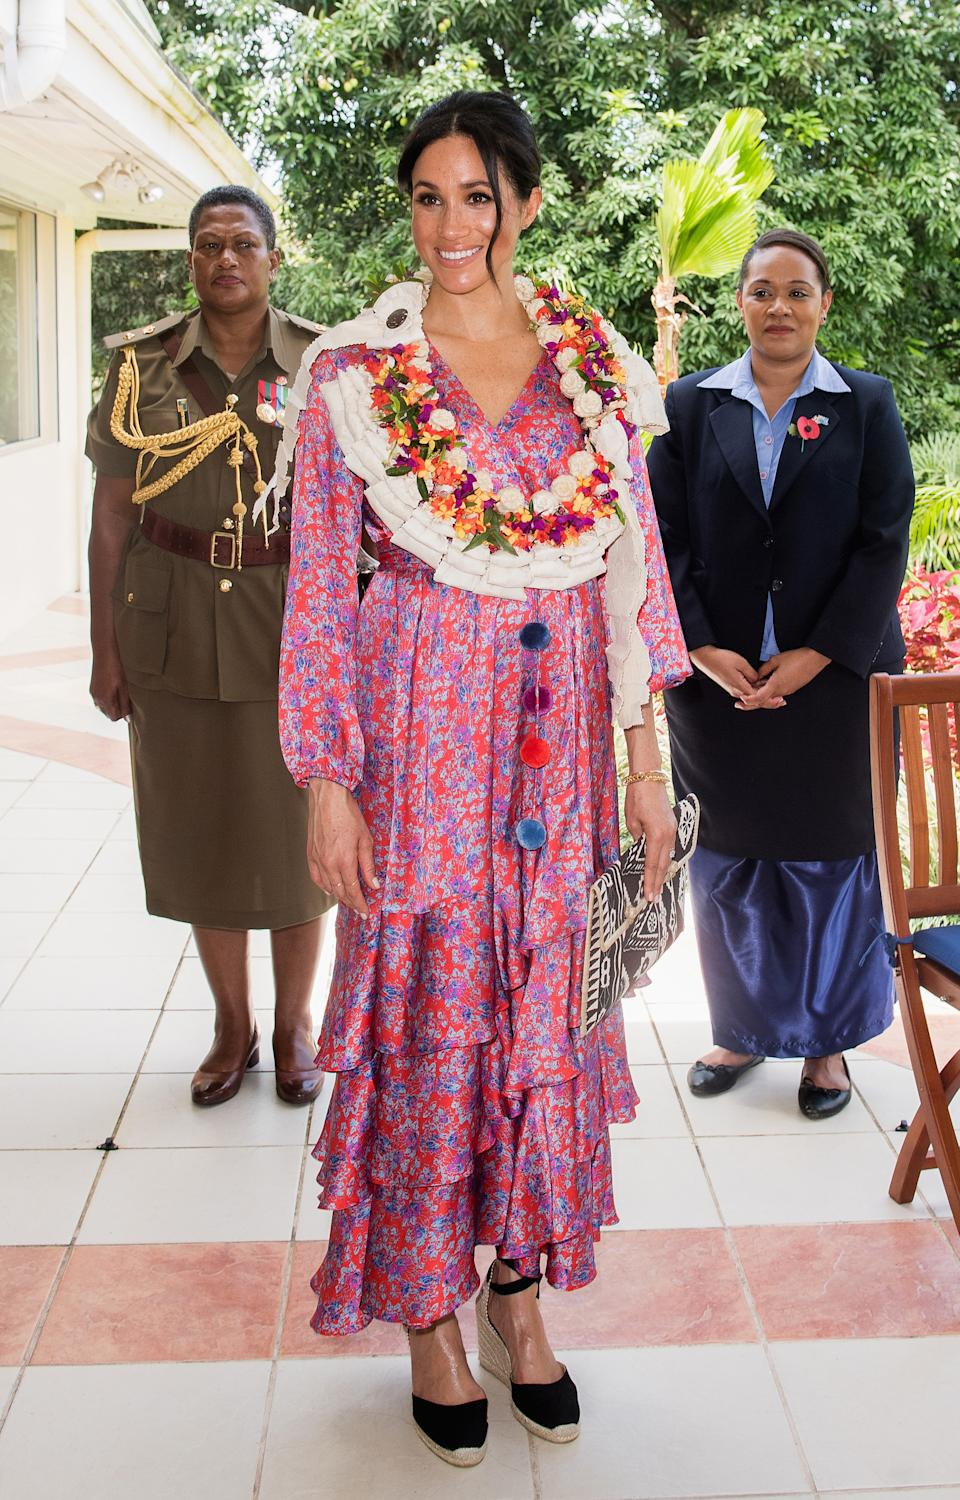 Meghan Markle attended a morning tea reception at the British High Commissioner's Residence in Suva, Fiji, in 2018 wearing the Cassandra wedges. (Getty Images)